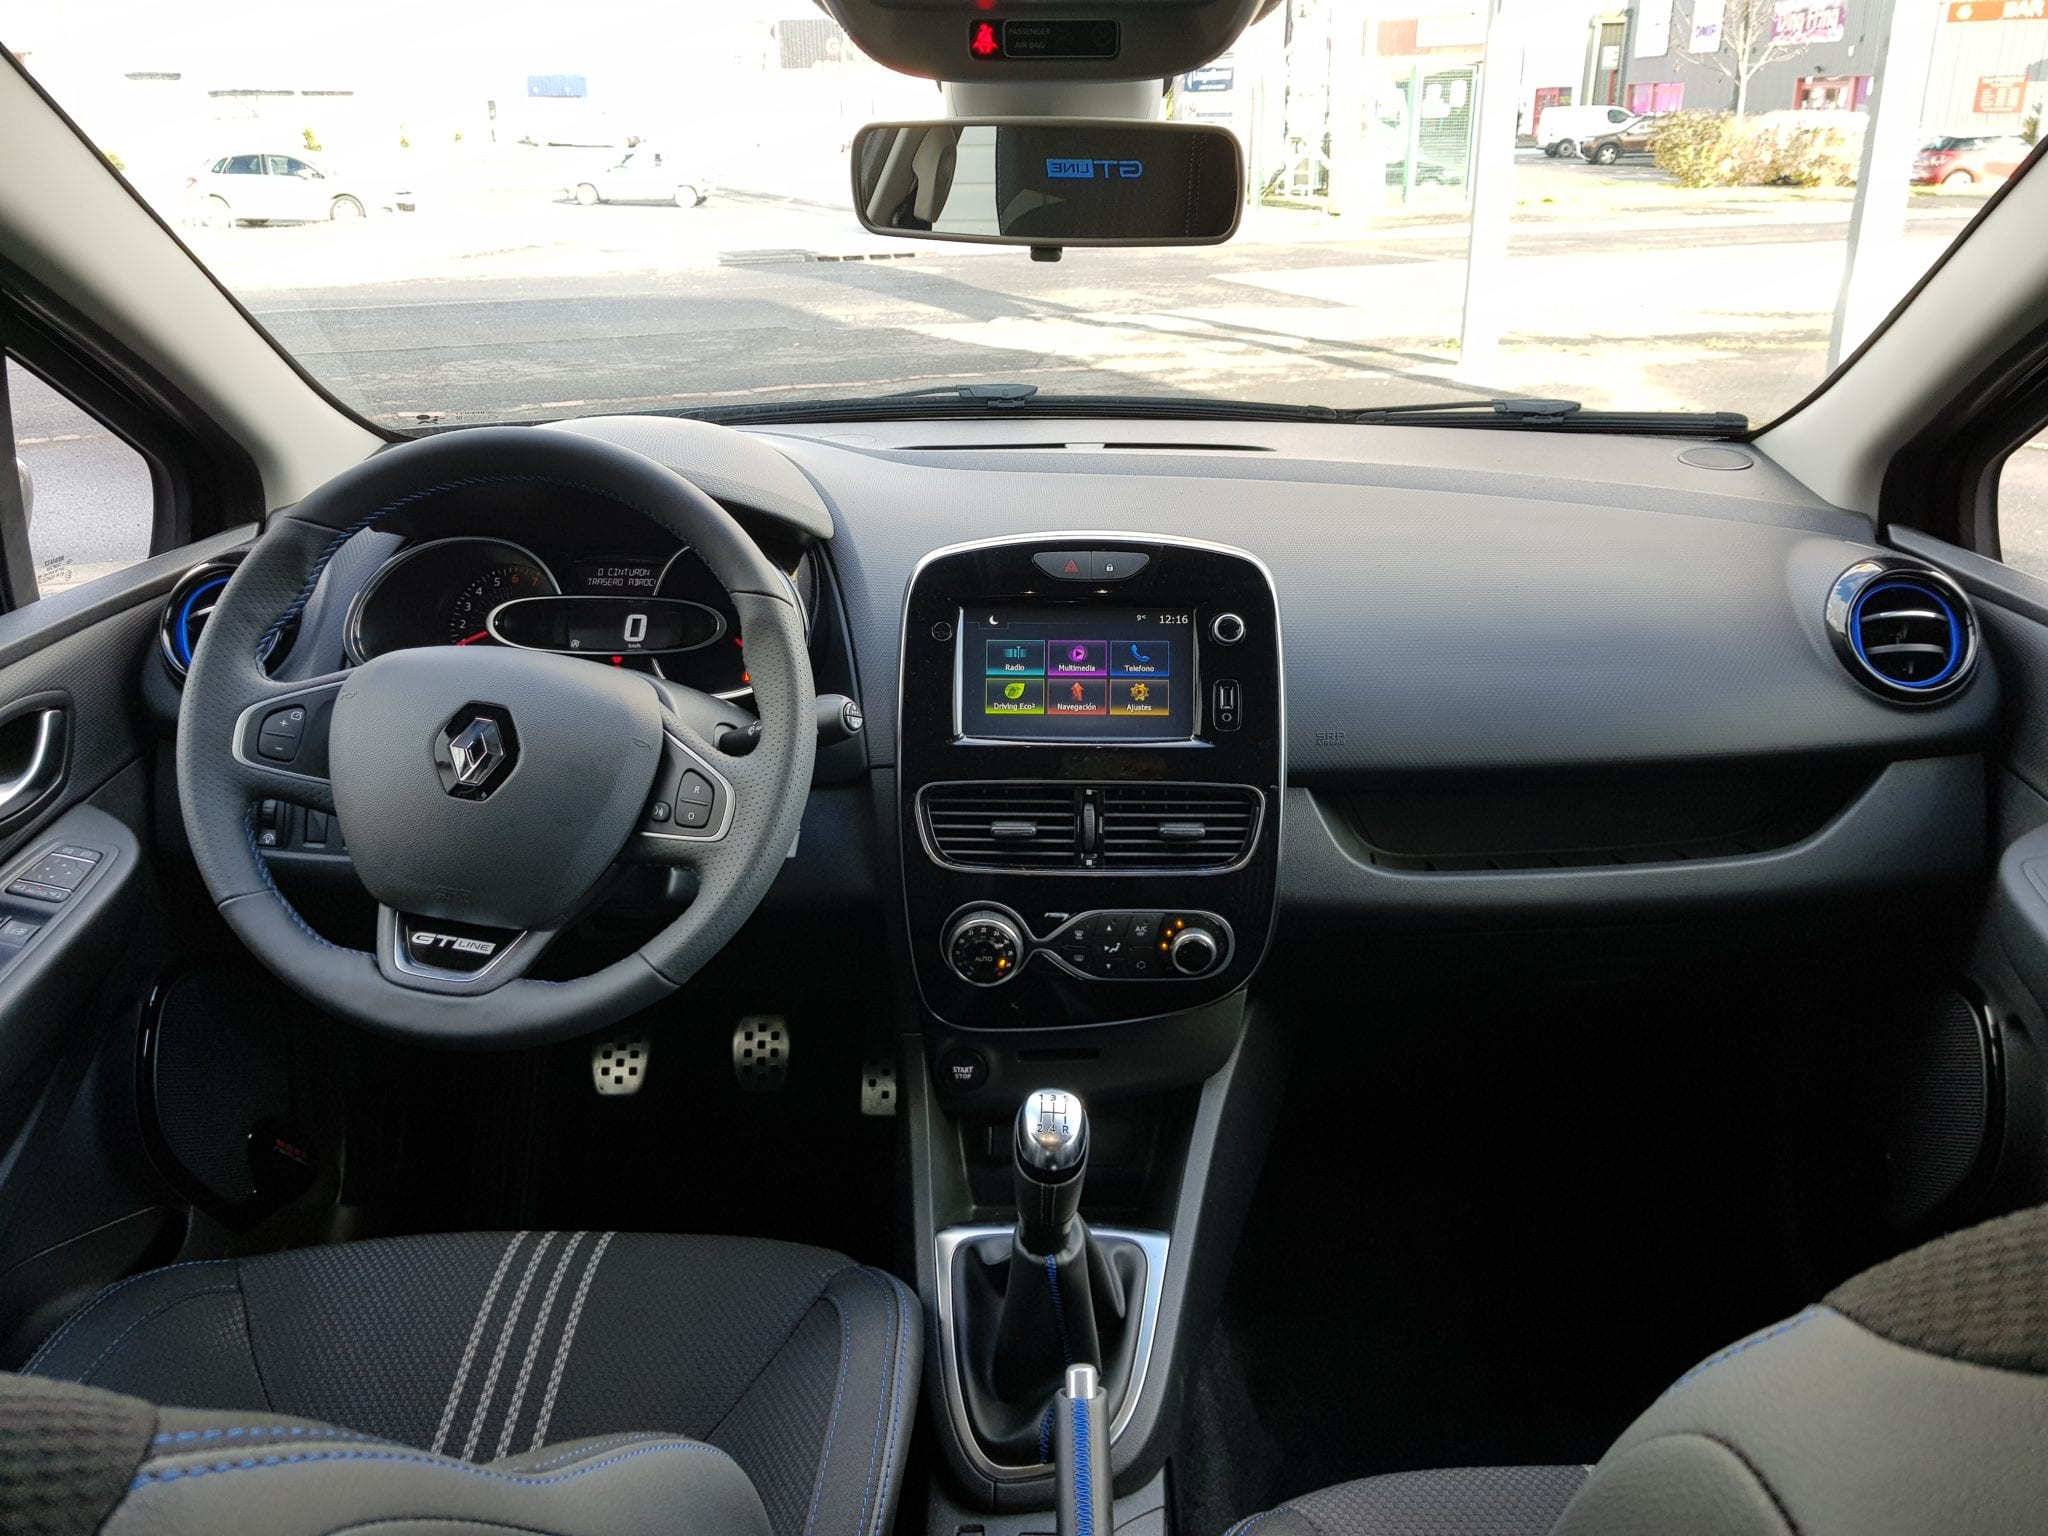 RENAULT NV CLIO 4 TCE 90 ENERGY GT-LINE - Image 5